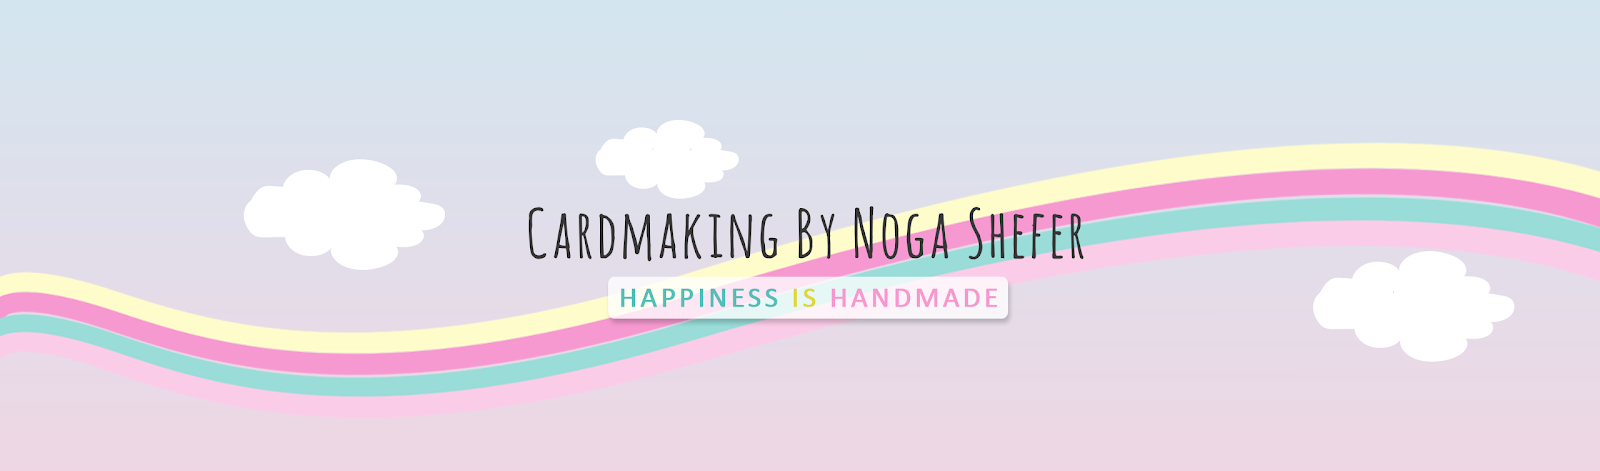 Cardmaking by Noga Shefer